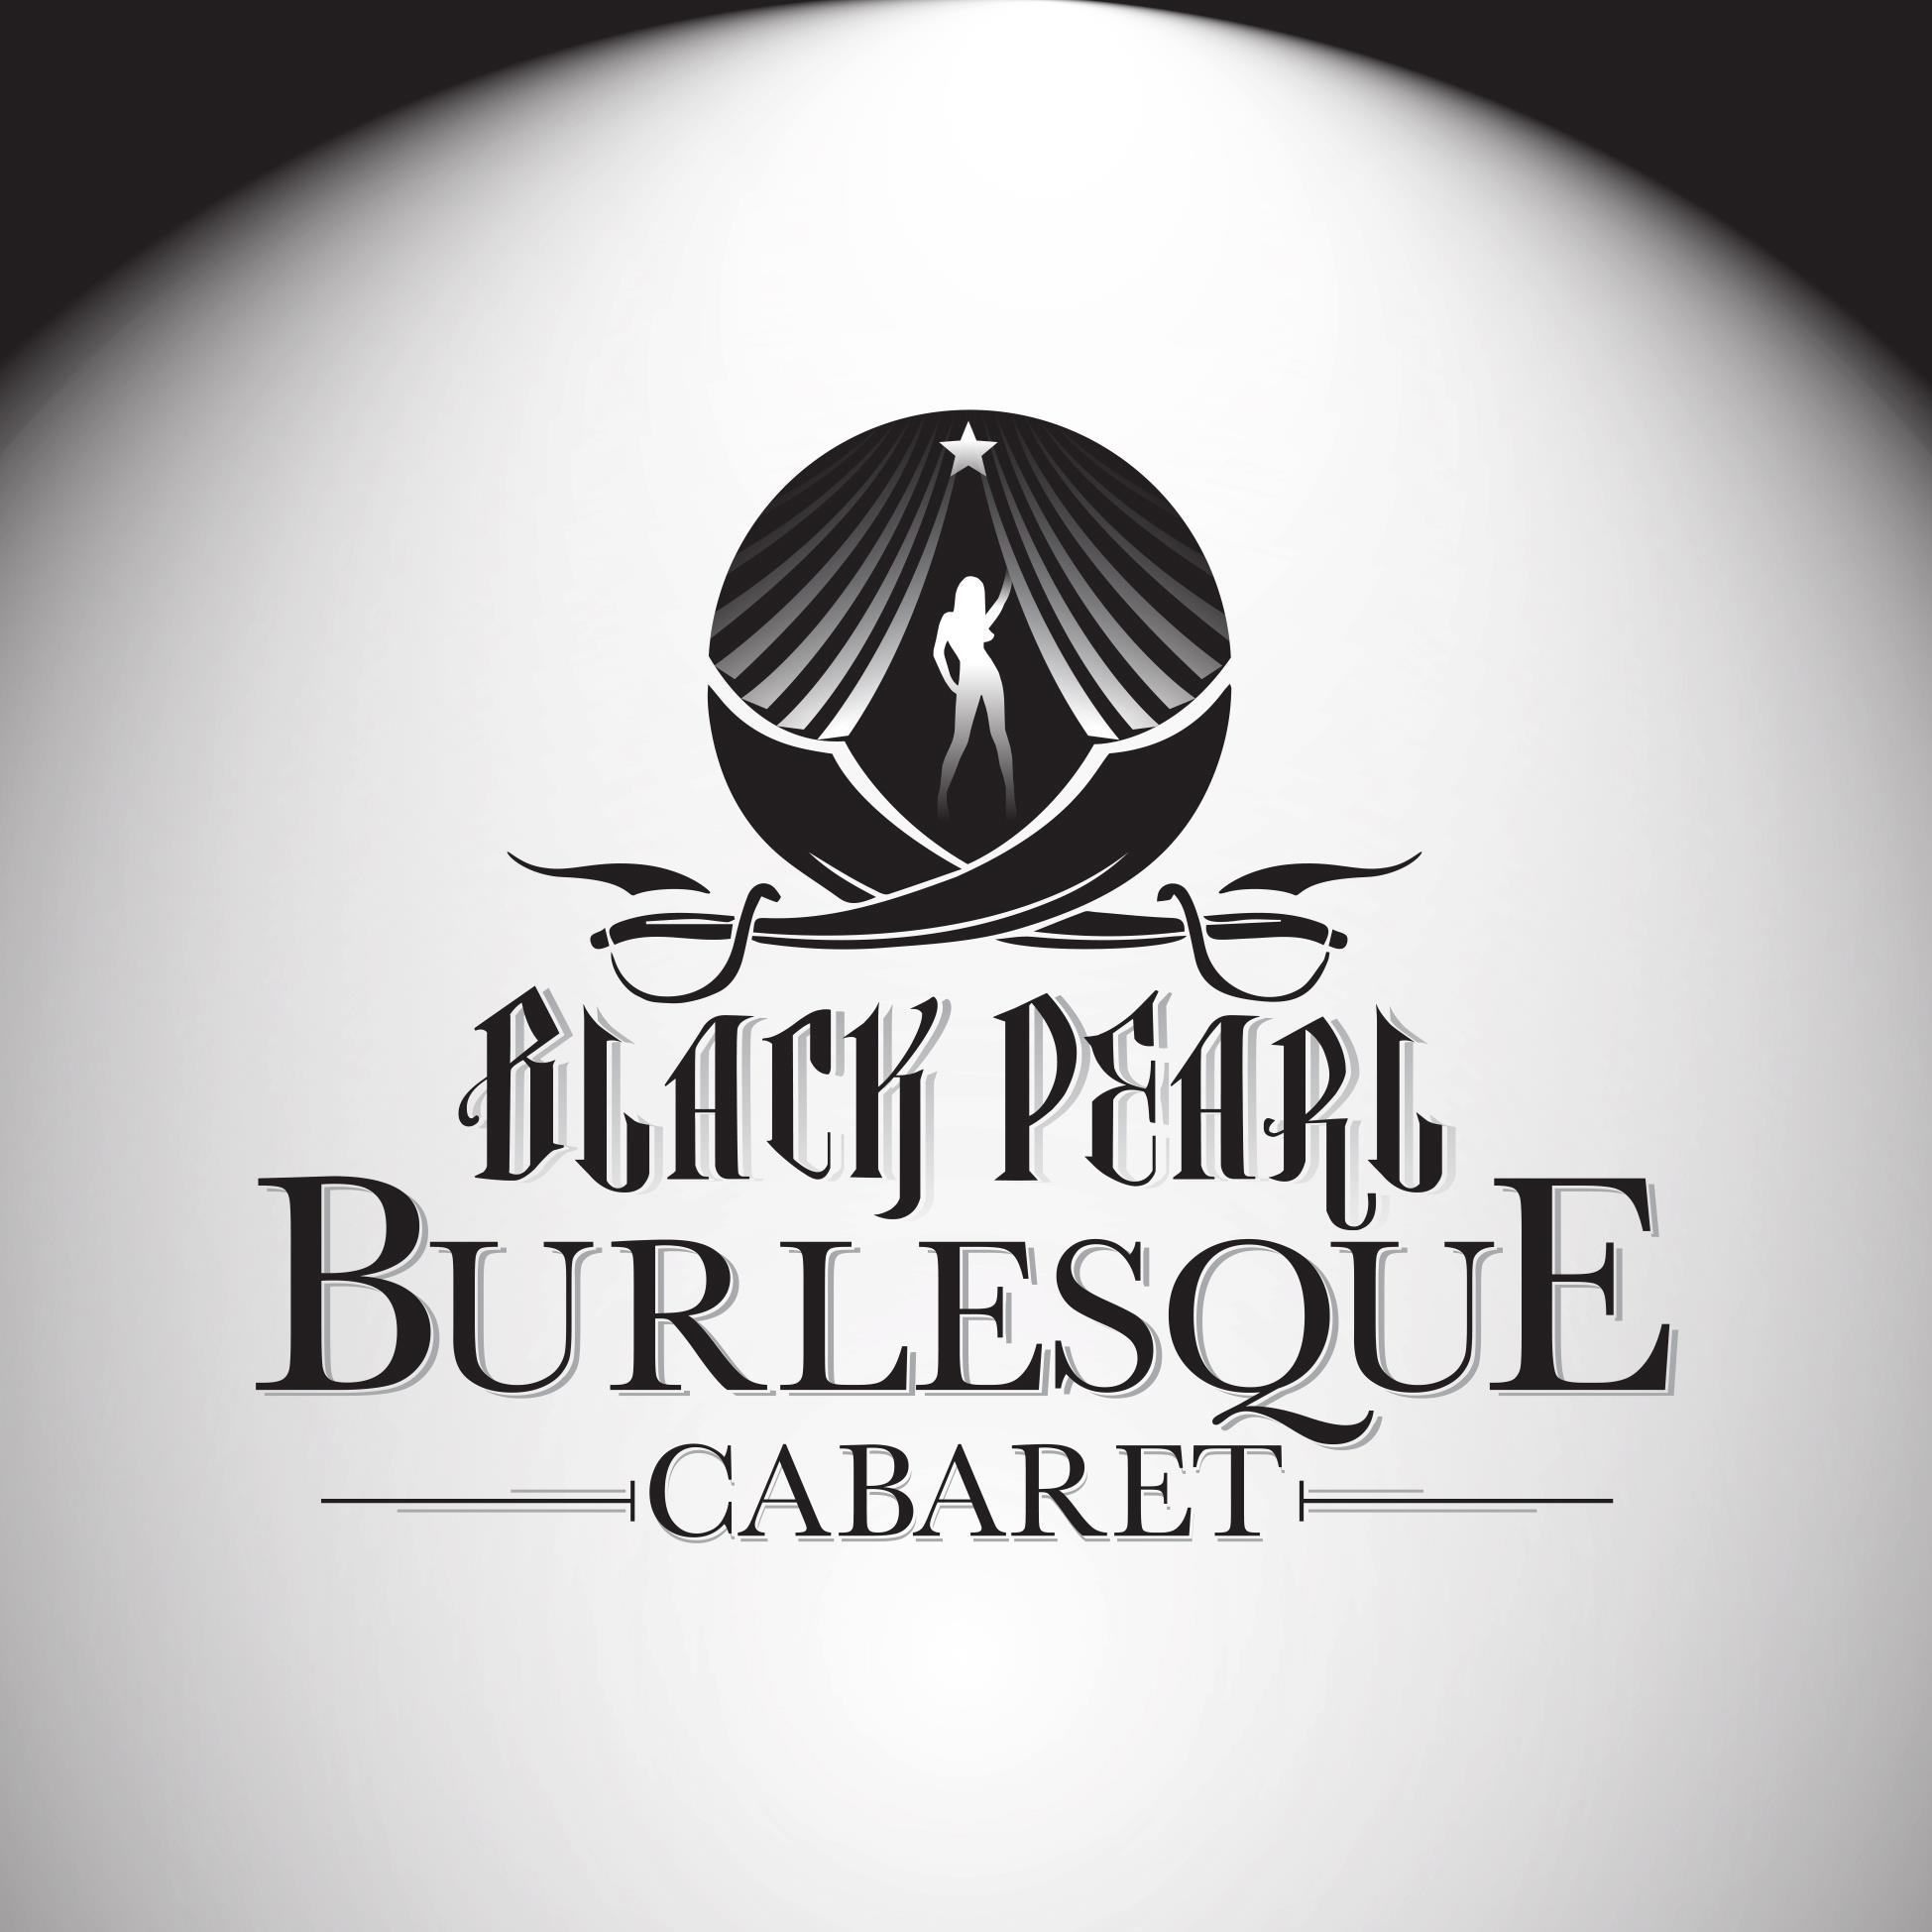 Black Pearl Burlesque